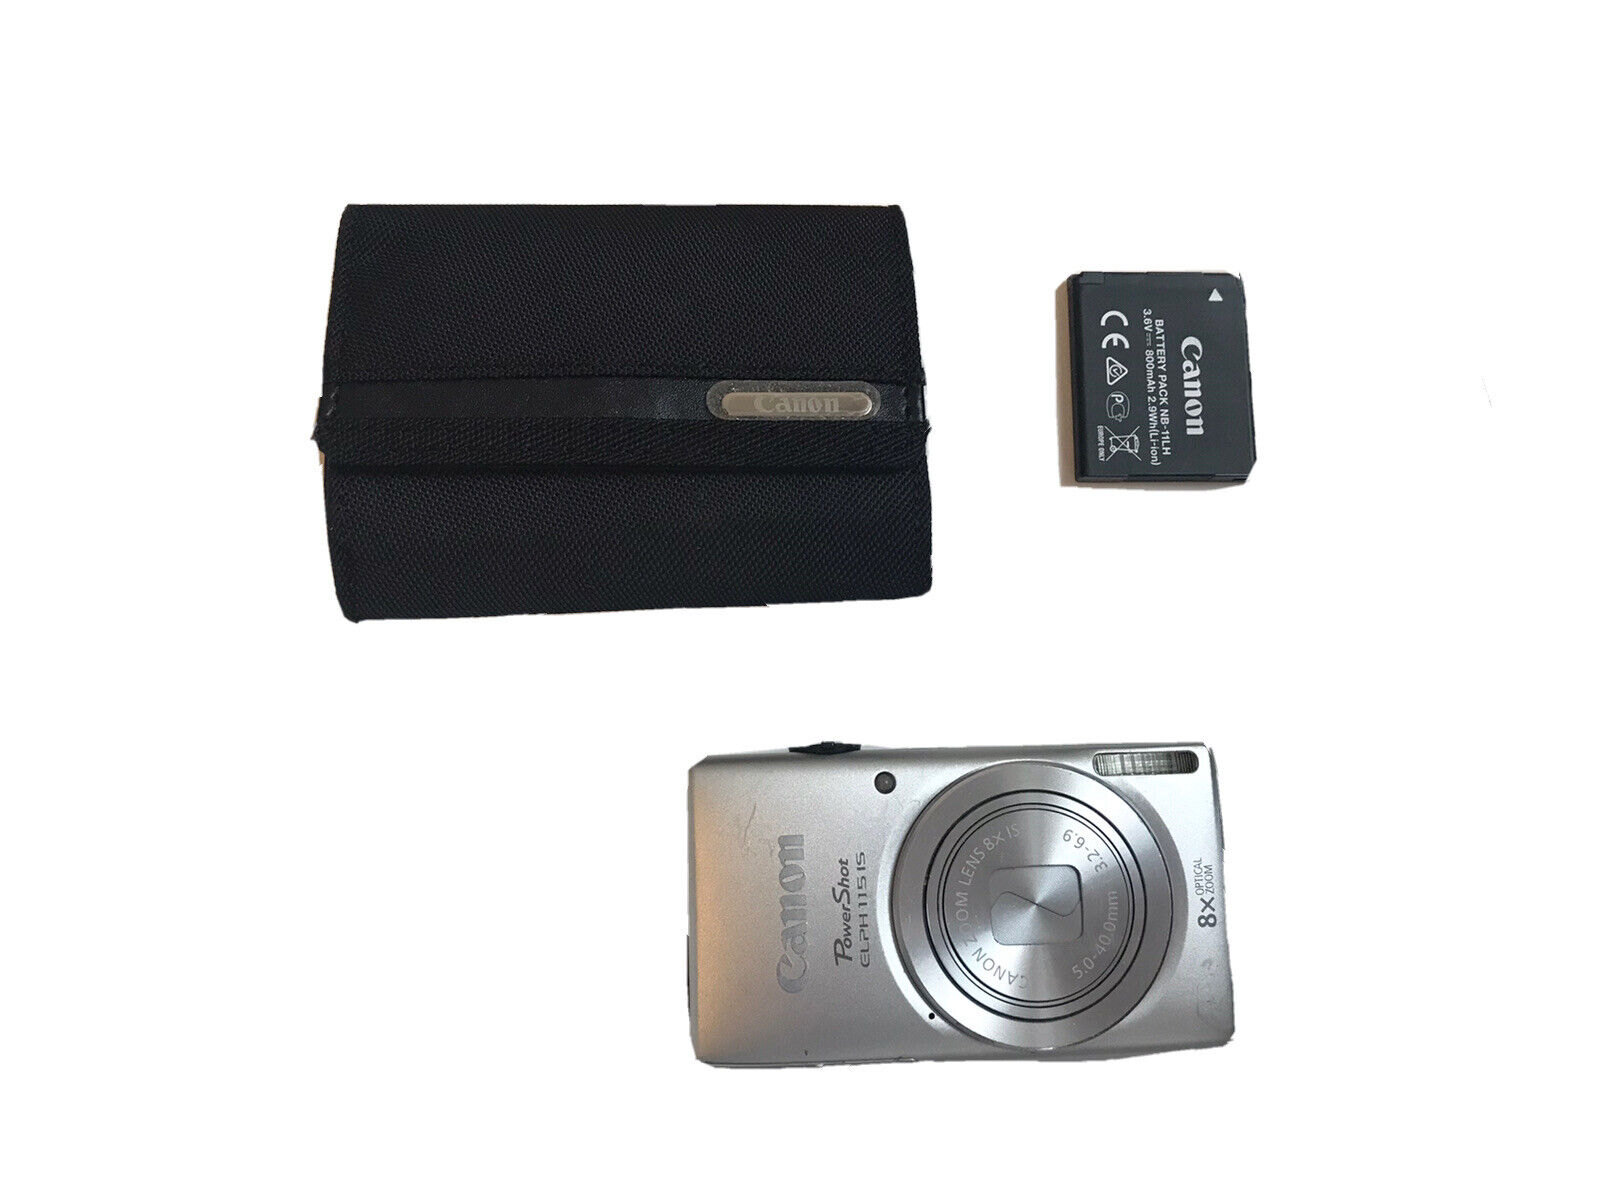 Camera Canon PowerShot ELPH 115 IS Silver 28mm with Case Free Shipping